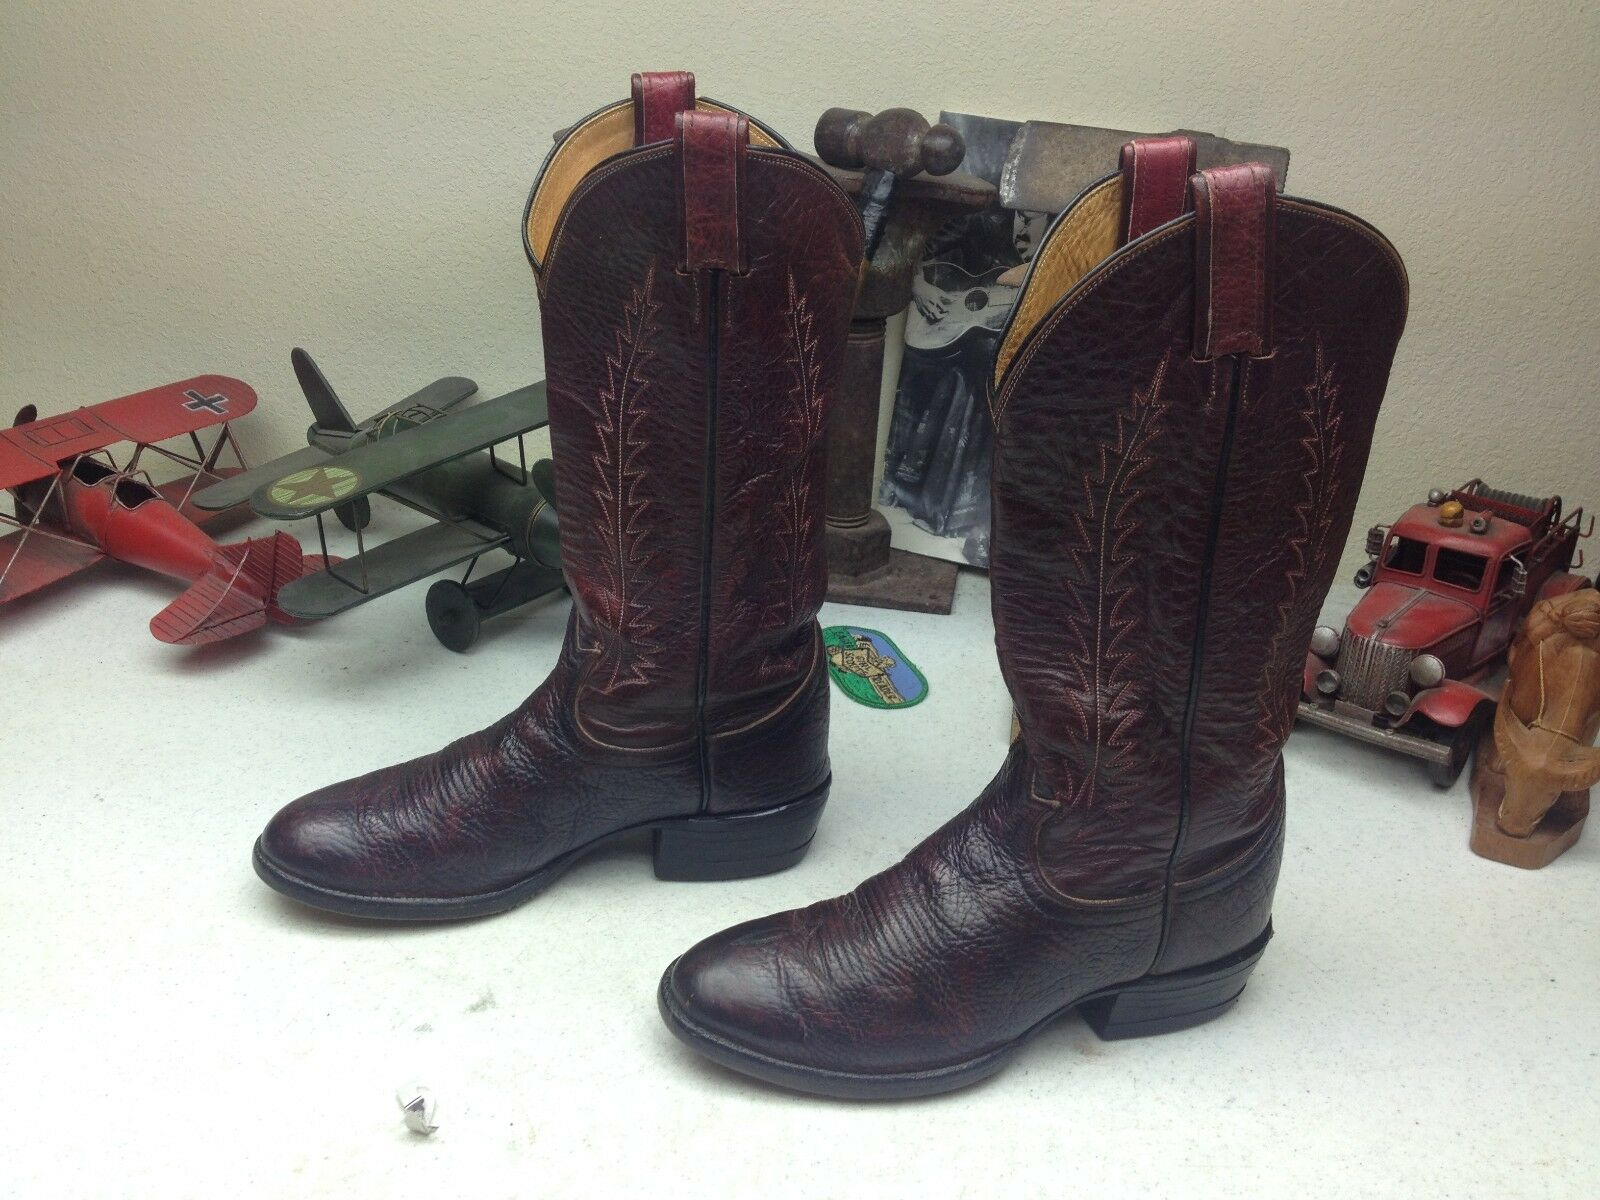 BLACK LABEL VINTAGE BURGUNDY TONY LAMA LEATHER RODEO RANCH DANCE WORK BOOTS 6 B